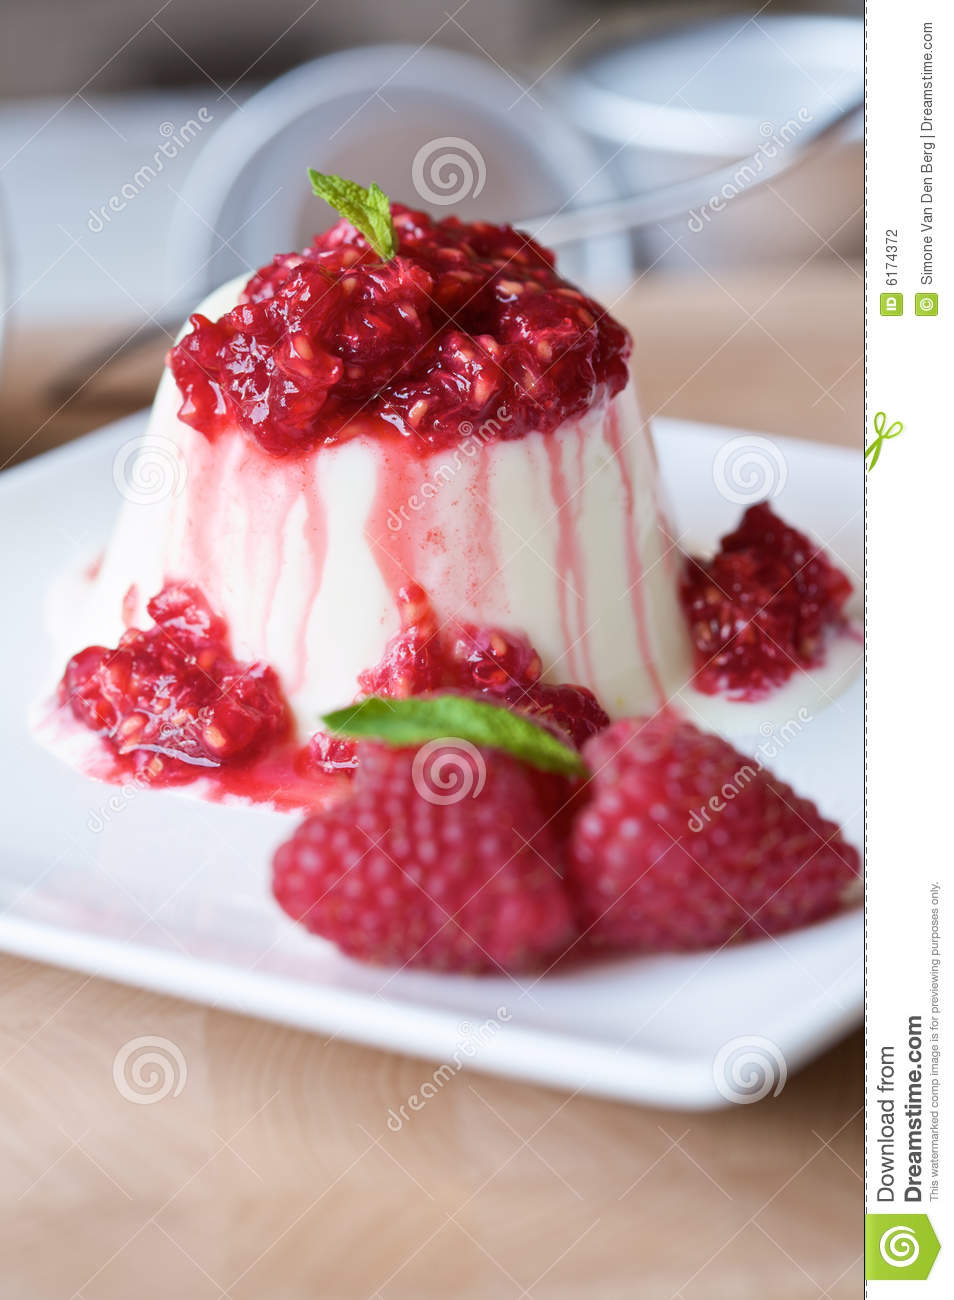 Buttermilk Panna Cotta With Raspberries Recipe — Dishmaps